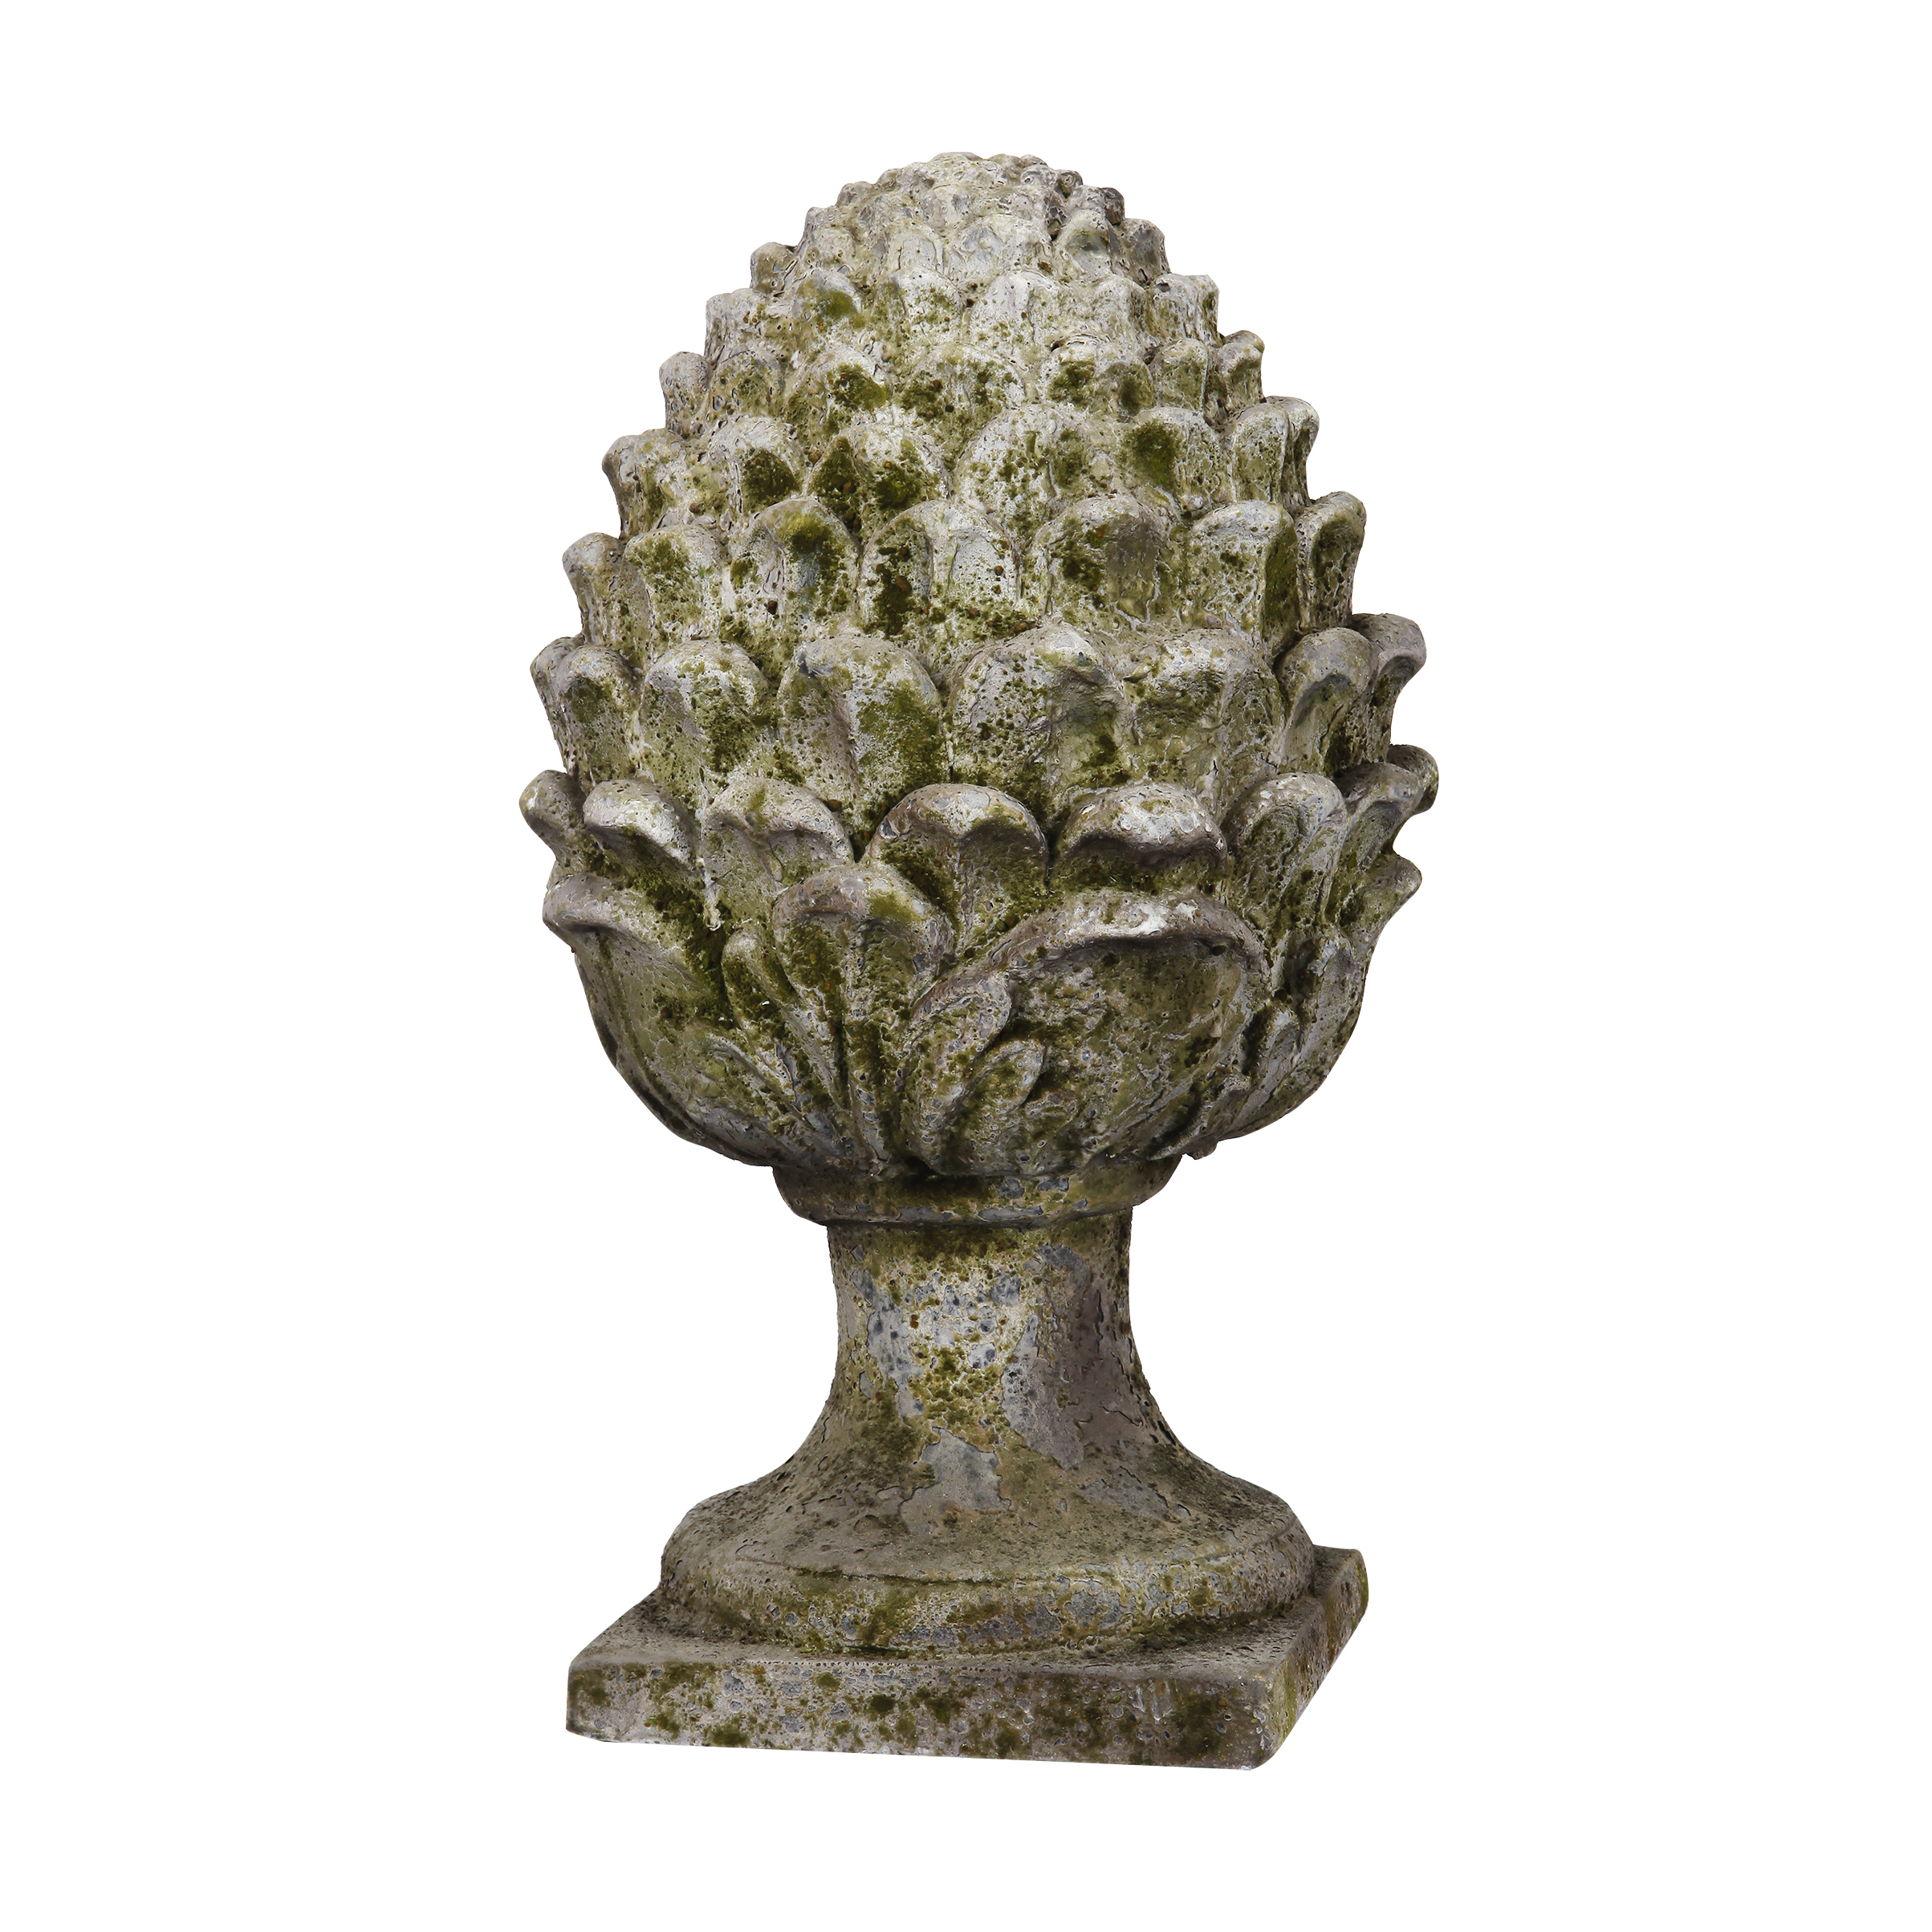 Indoor Ornament Stone Pineapple Finials Decorative Stone Home Decor